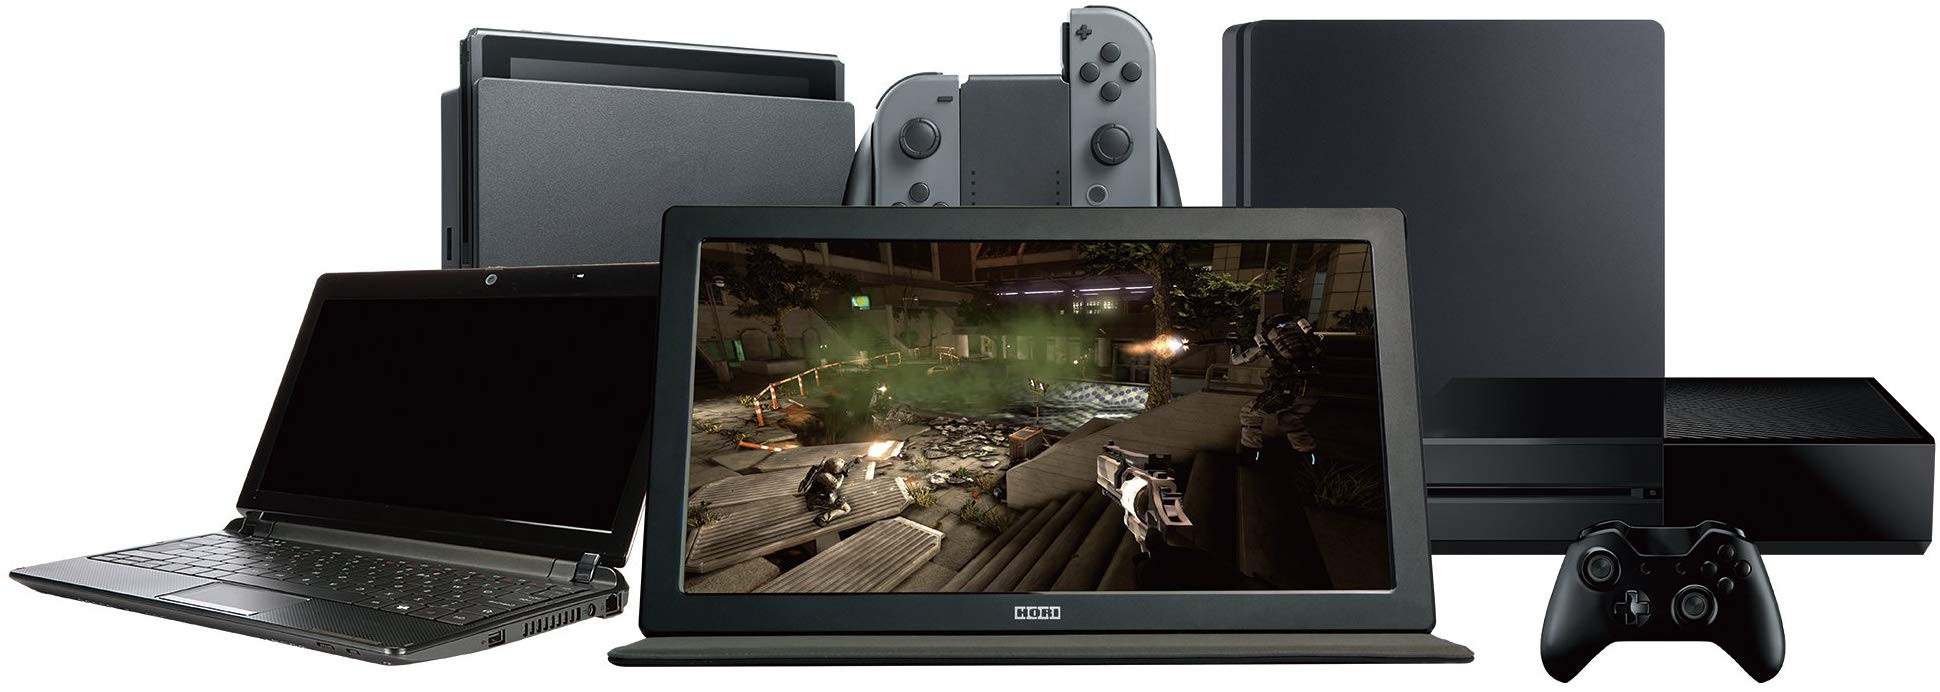 HORI mobile HD gaming screen | 15.6 inches